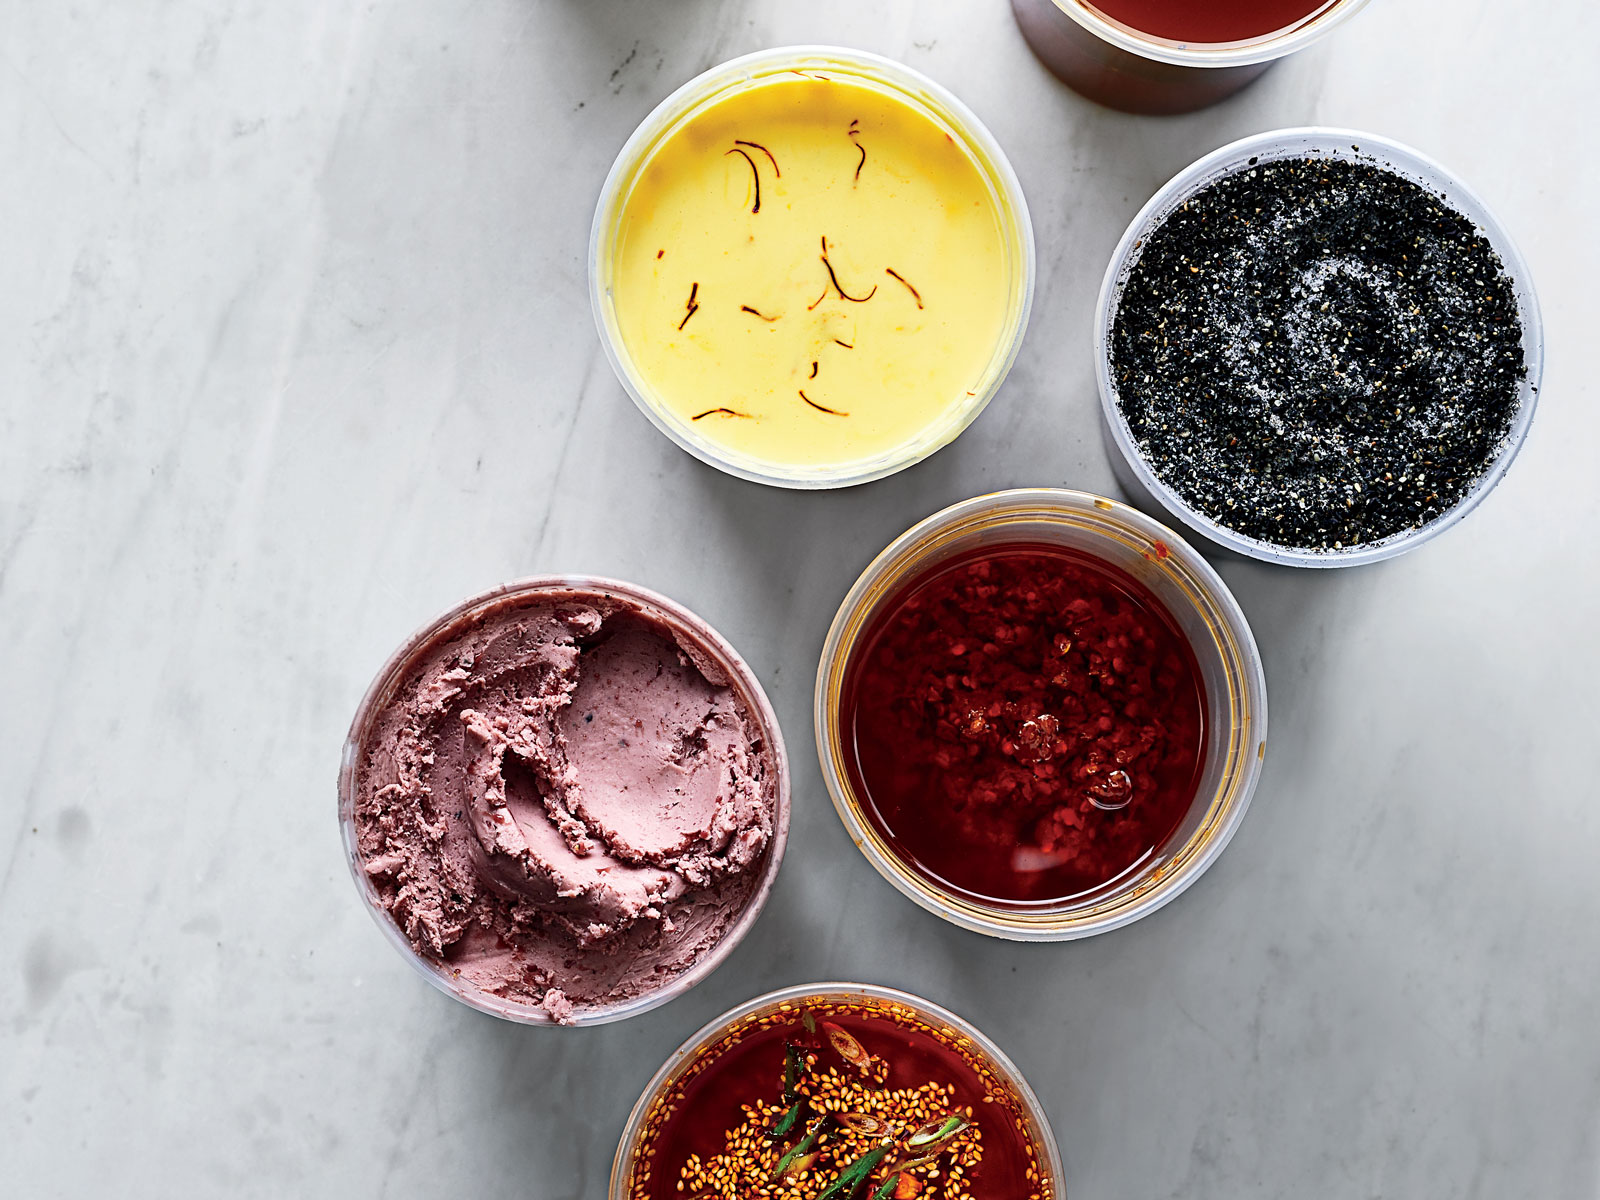 7 Sauces and Seasonings to Flavor-Boost Any Meal